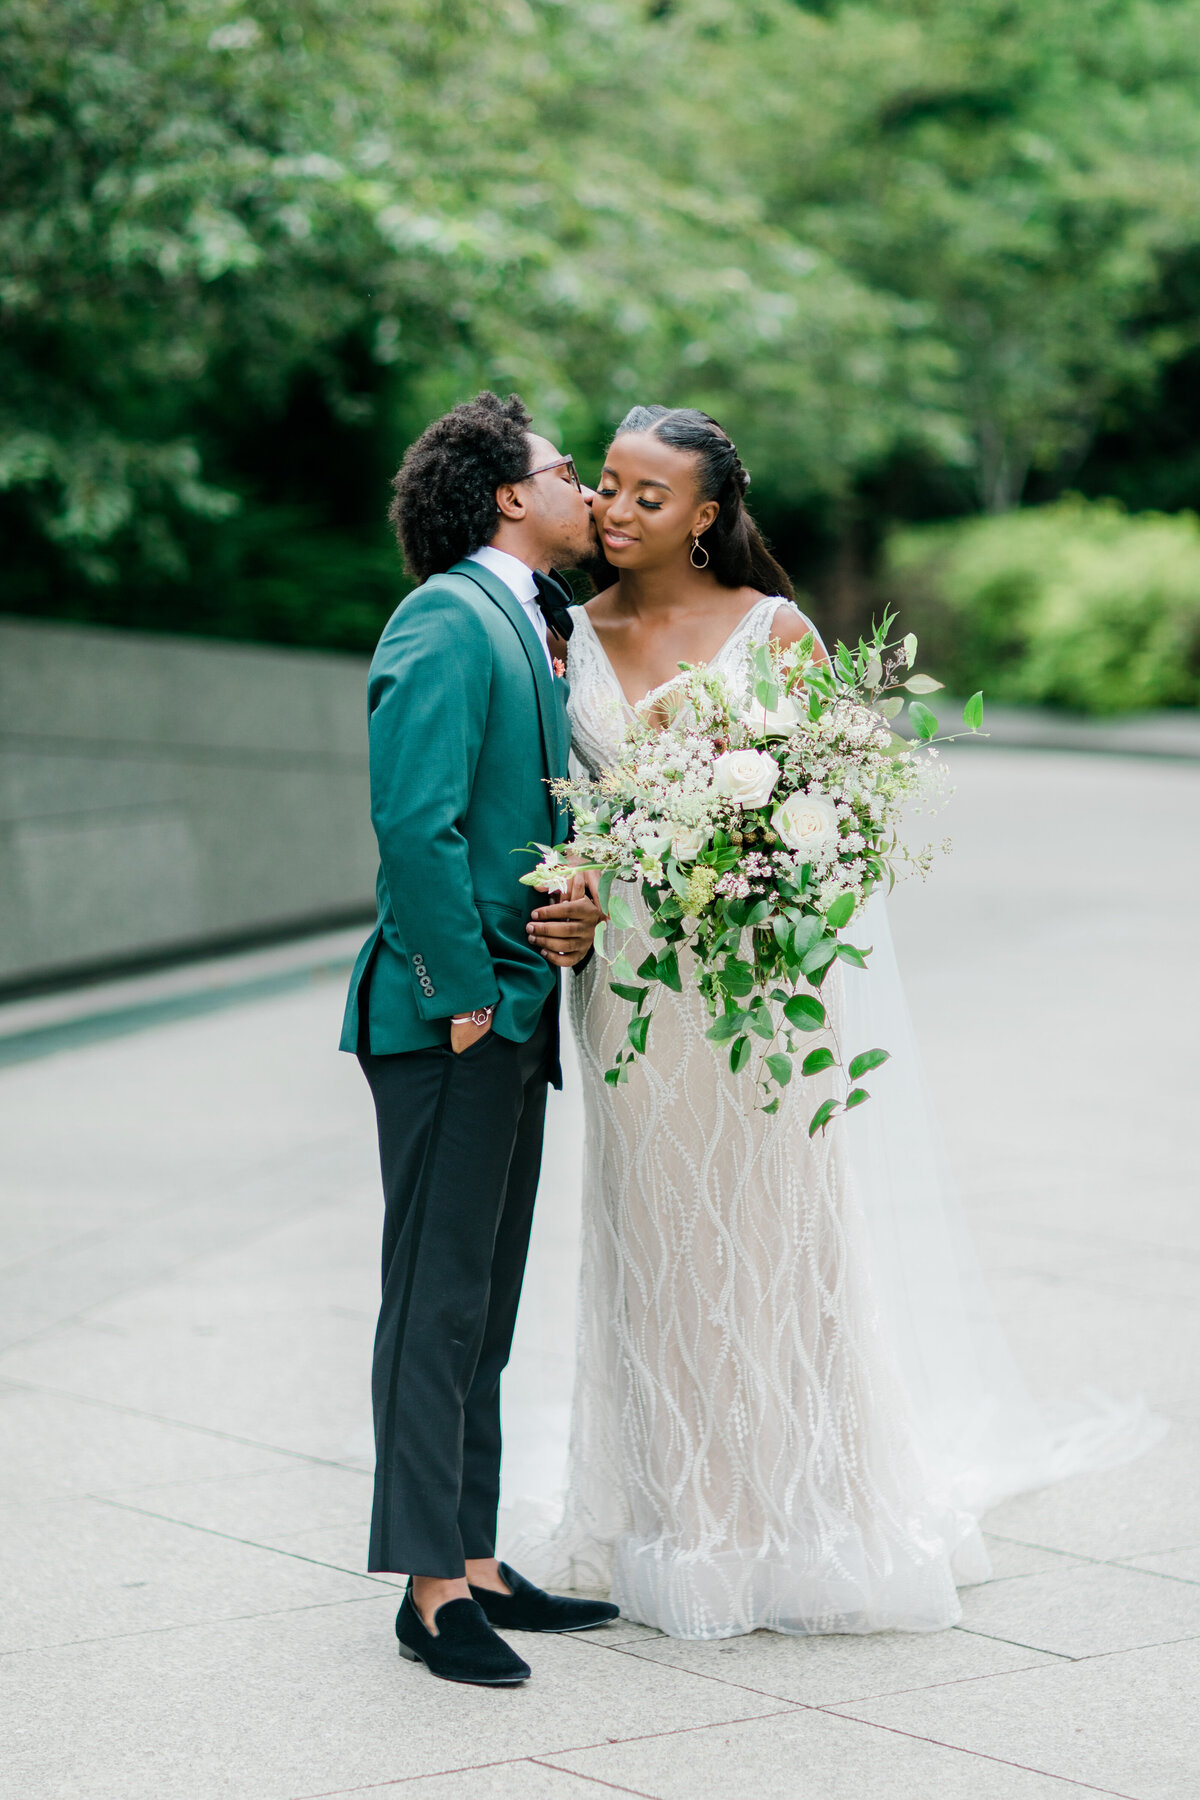 Solomon_Tkeyah_Micro_COVID_Wedding_Washington_DC_War_Memorial_MLK_Memorial_Linoln_Memorial_Angelika_Johns_Photography-3817